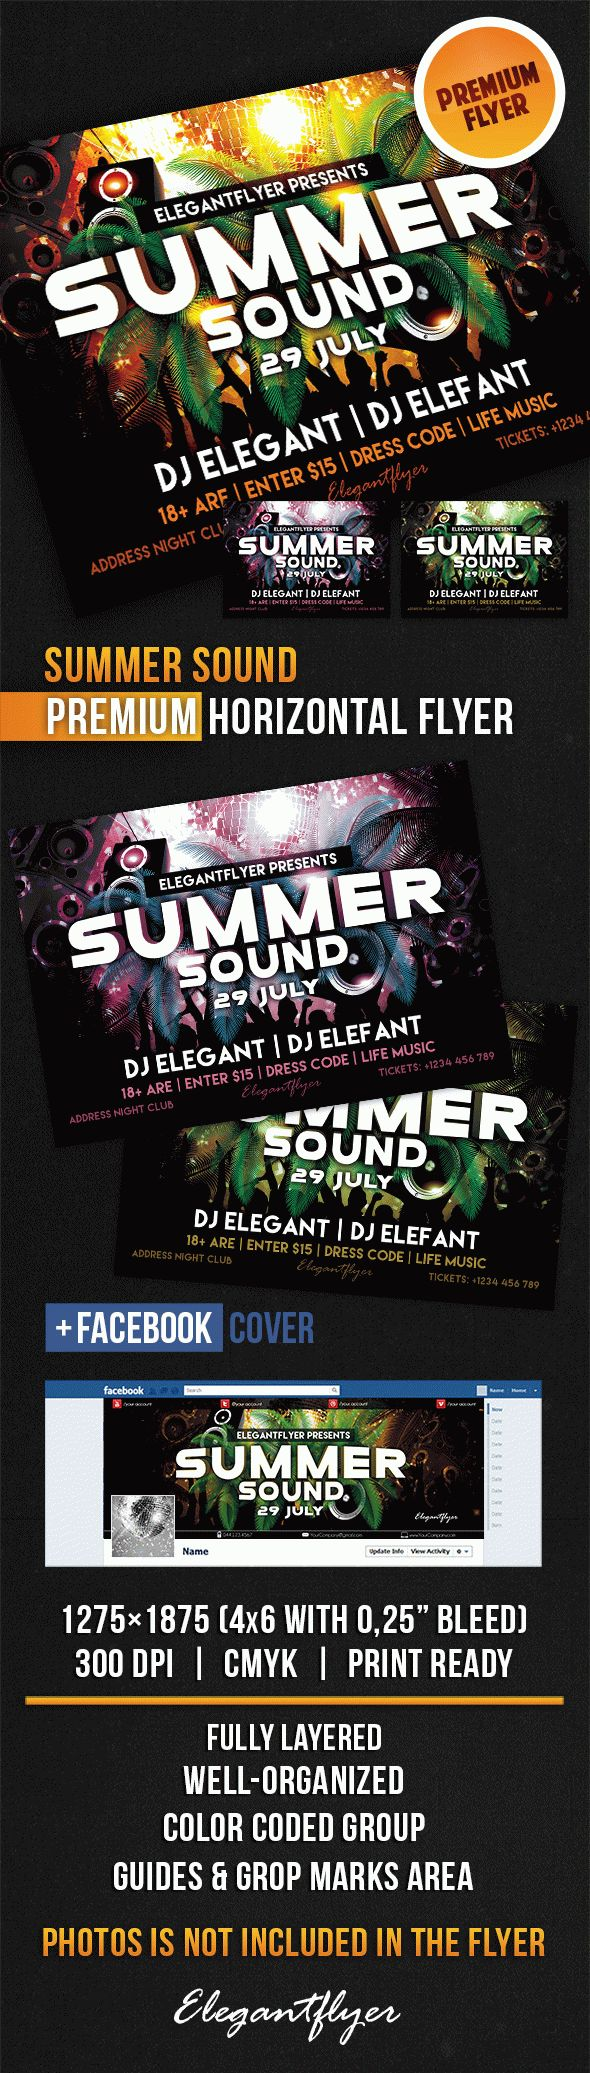 Summer Sound – Horizontal Flyer PSD Template + Facebook Cover